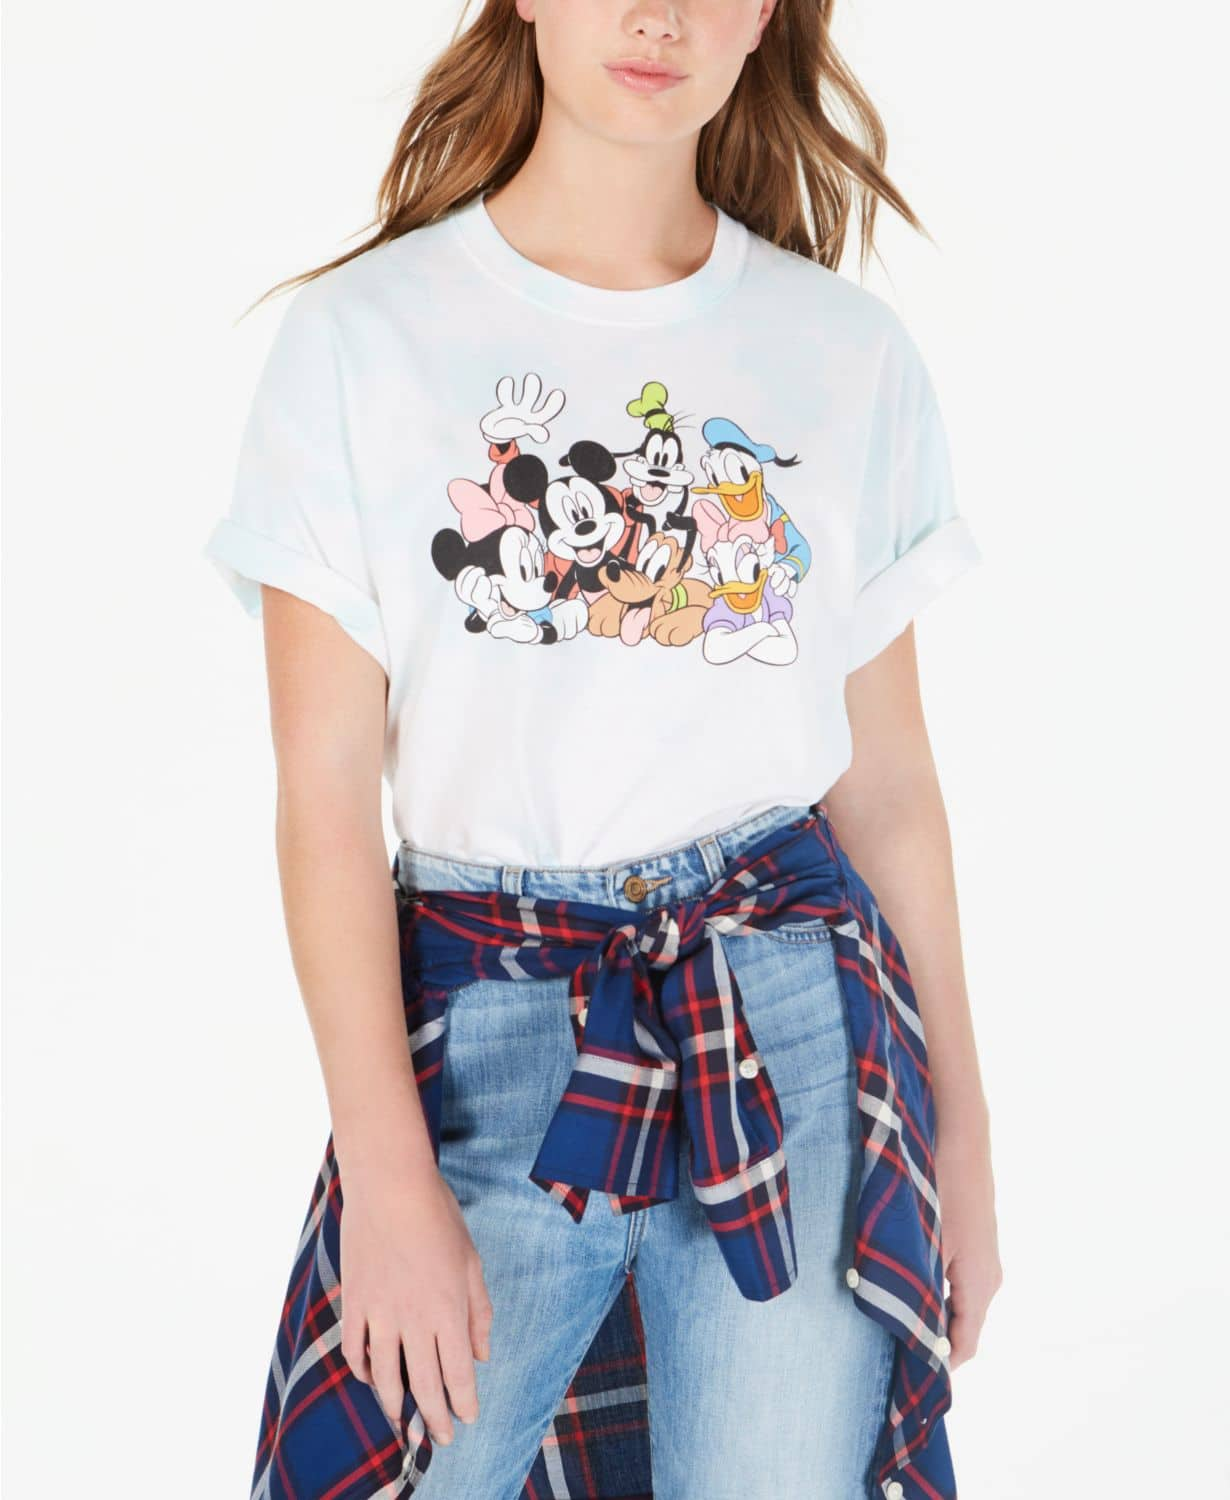 Disney Juniors' Mickey and Friends T-Shirt $10 & More + Free Shipping with orders $25+ at Macys